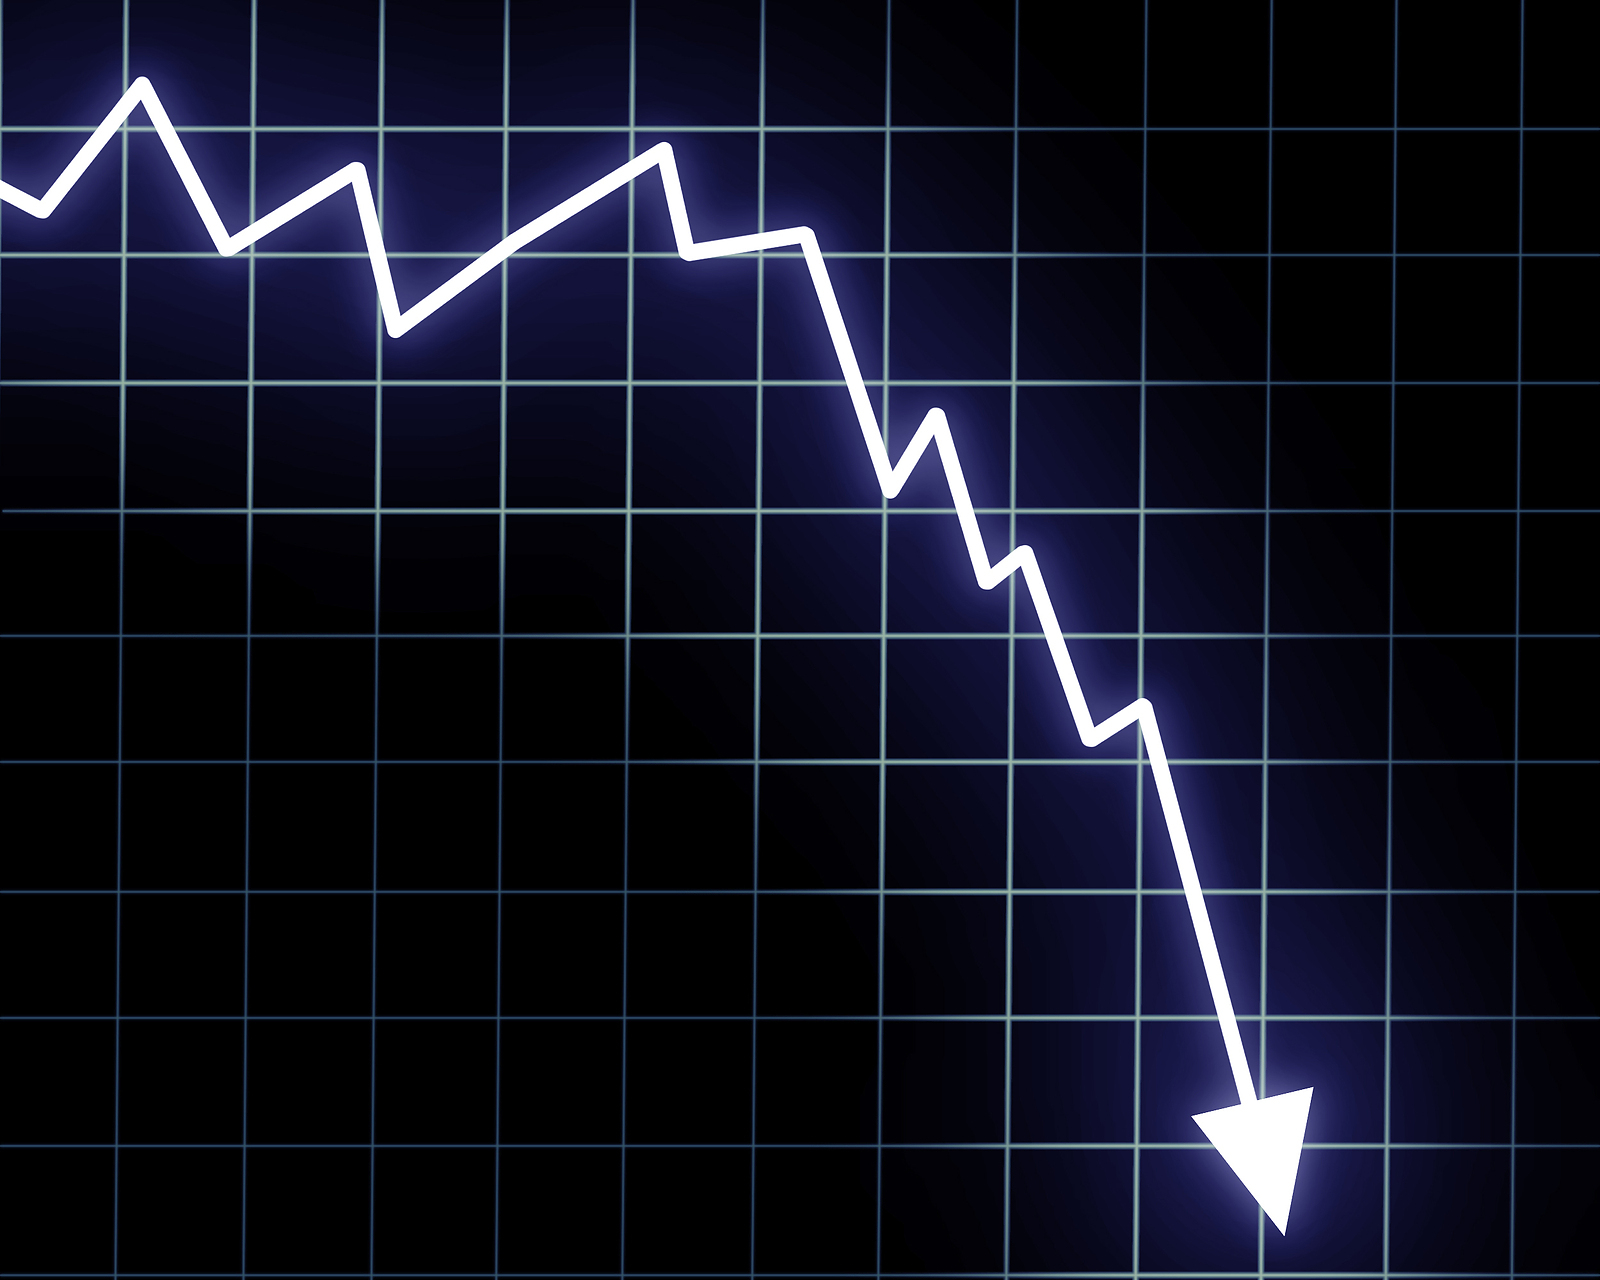 bigstock_Arrow_Graph_Going_Down_3207728